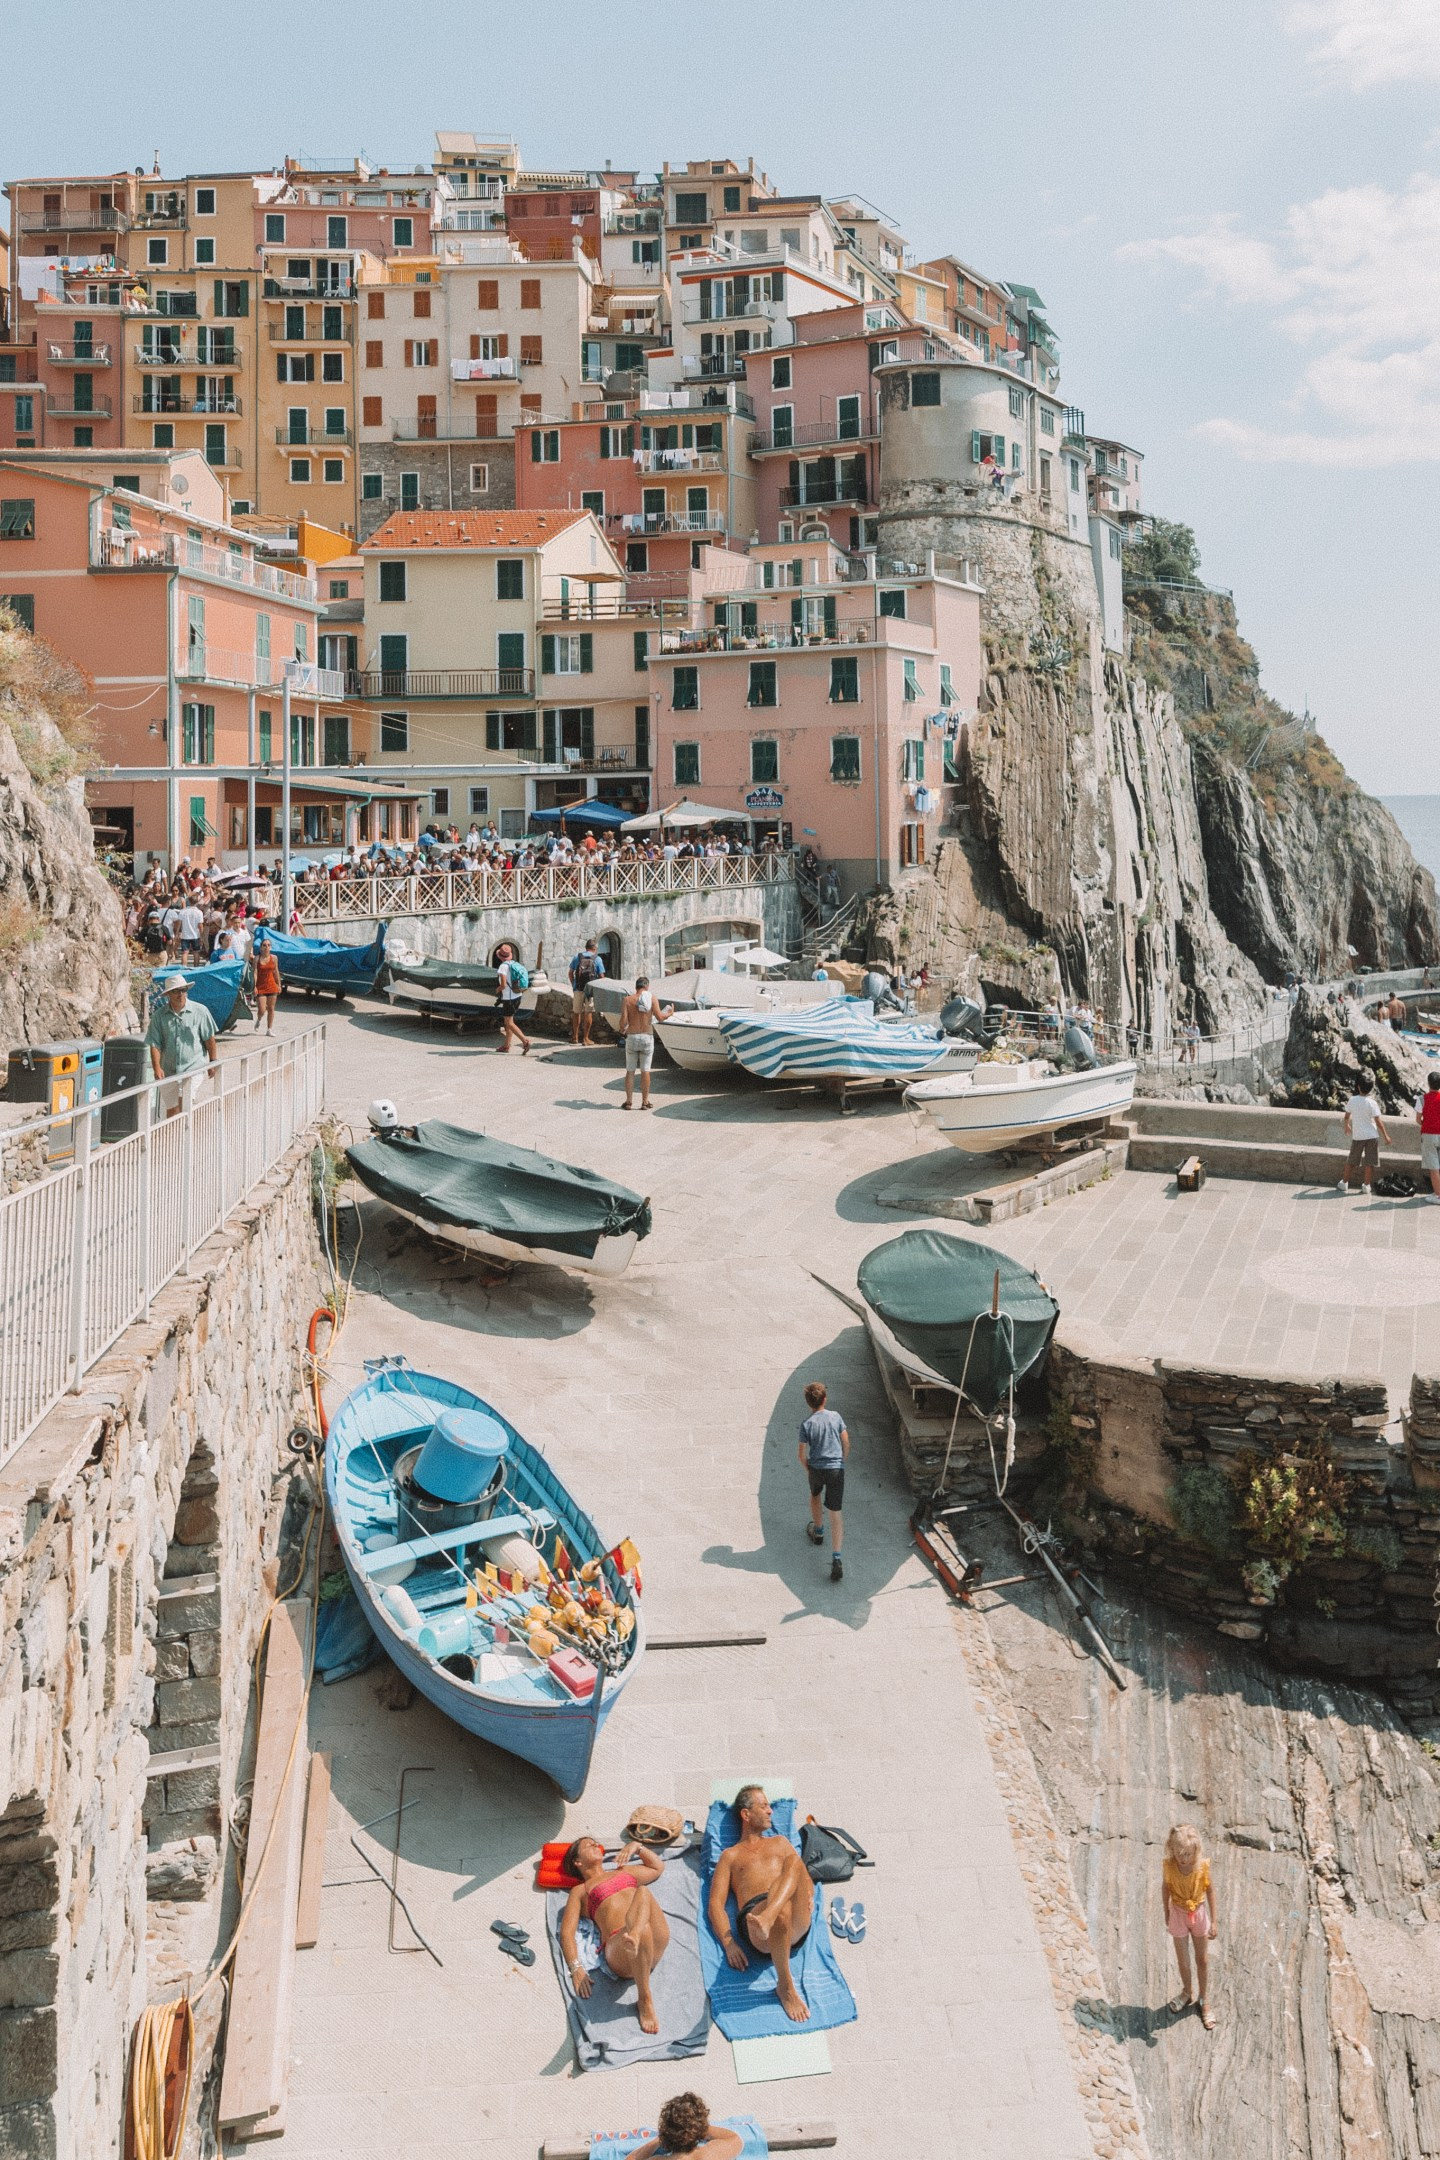 Colorful buildings of Manarola